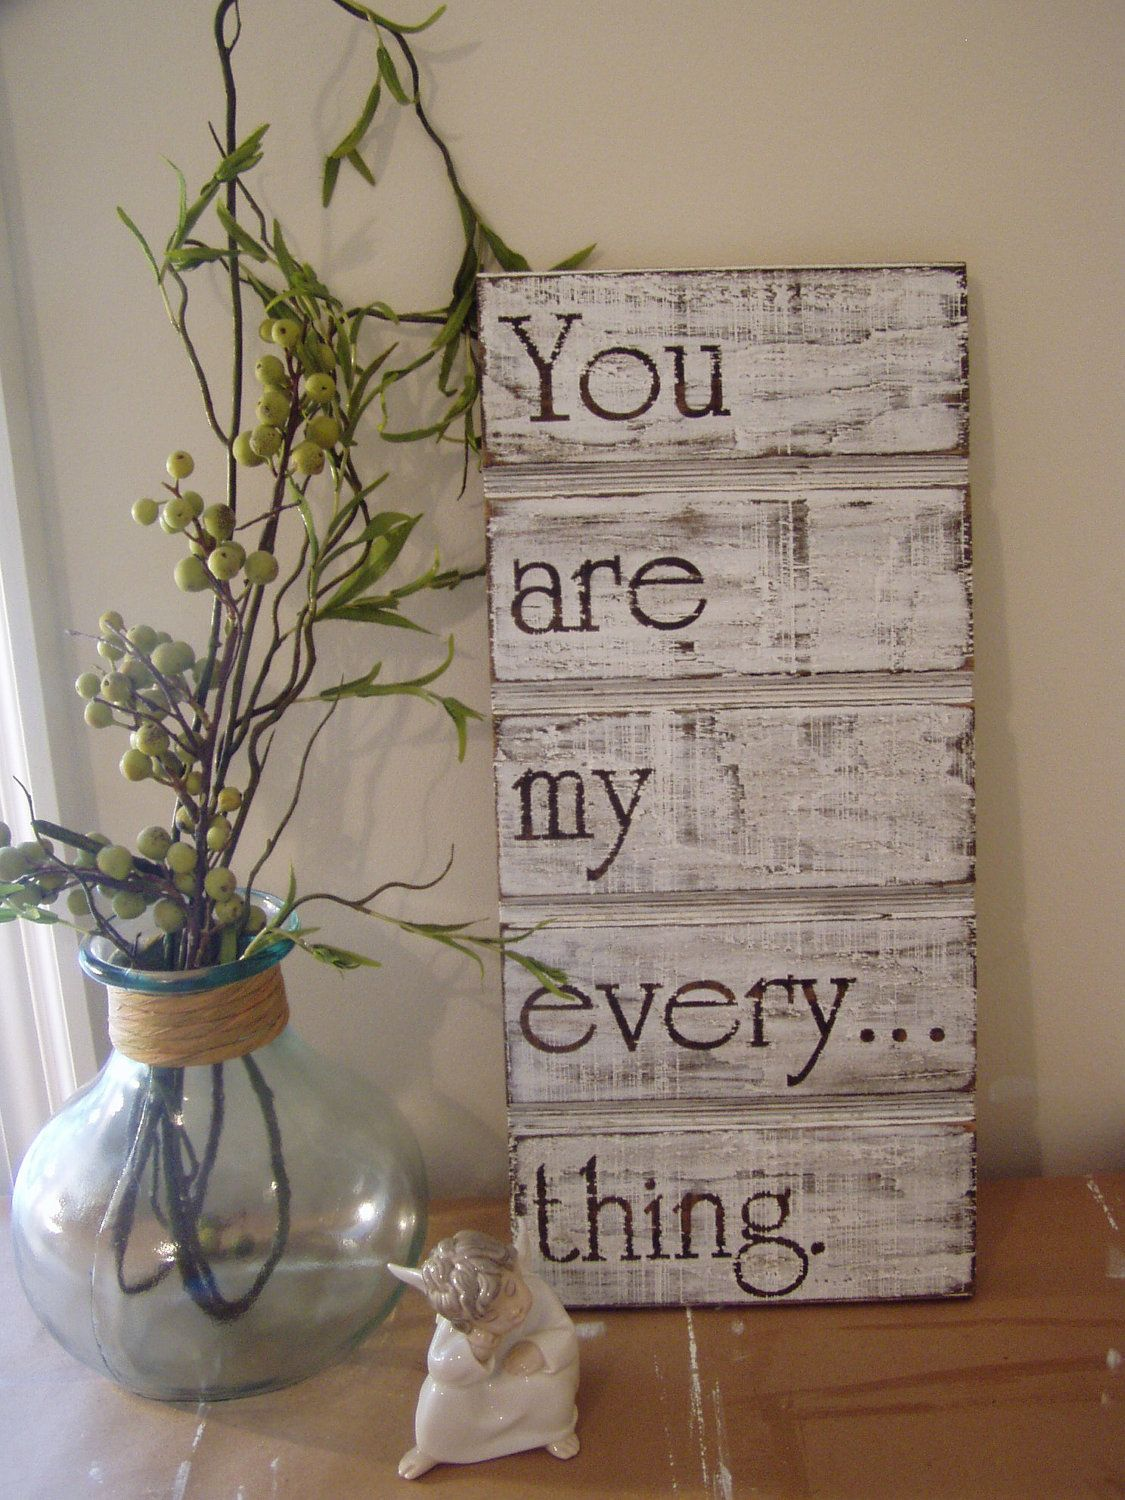 Wood Sign Design Ideas sign design ideas image 11 of 17 from gallery of easy diy wood pallet projects to boost your creativity You Are My Everything Wood Sign 3000 Via Etsy Wood Sign Design Ideas